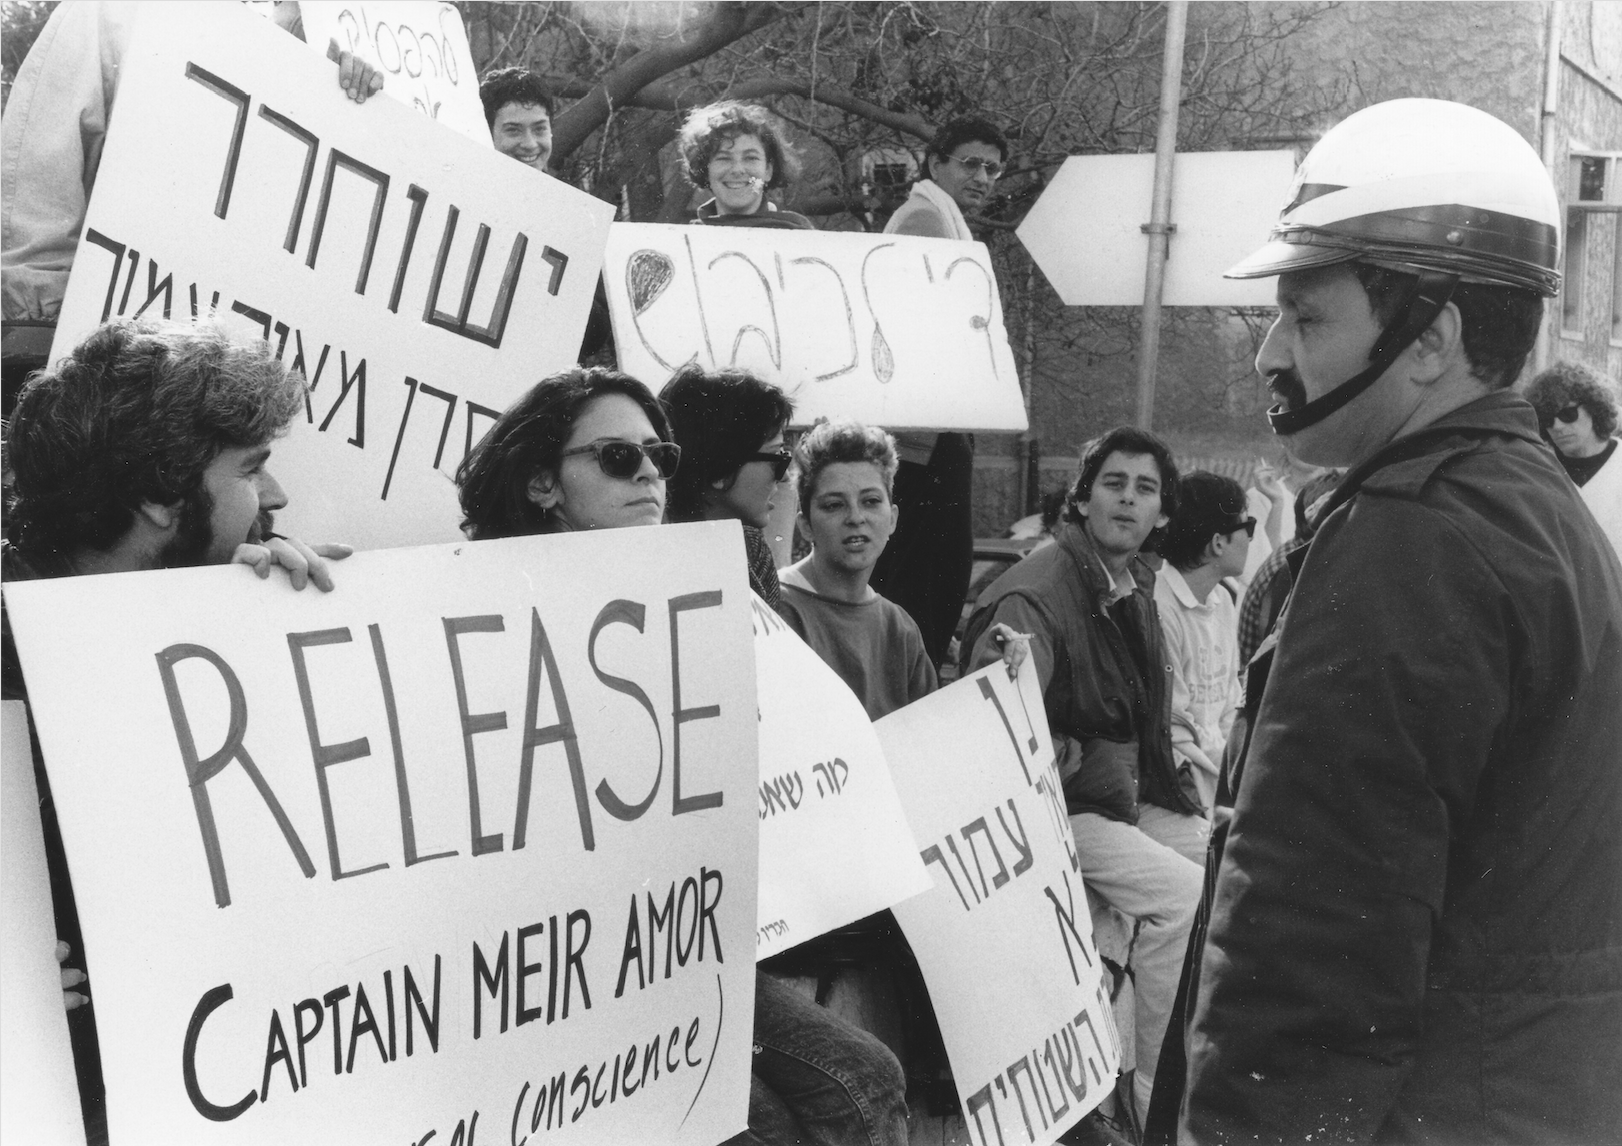 Students from Tel Aviv University protest for the release of conscientious objector Meir Amor in front of the Ministry of Defense, Tel Aviv. Amor refused to serve in the First Lebanon War and was sentenced to prison, February 15, 1988. (Vered Pe'er, Hashomer Hatzair archive/The National Library of Israel)